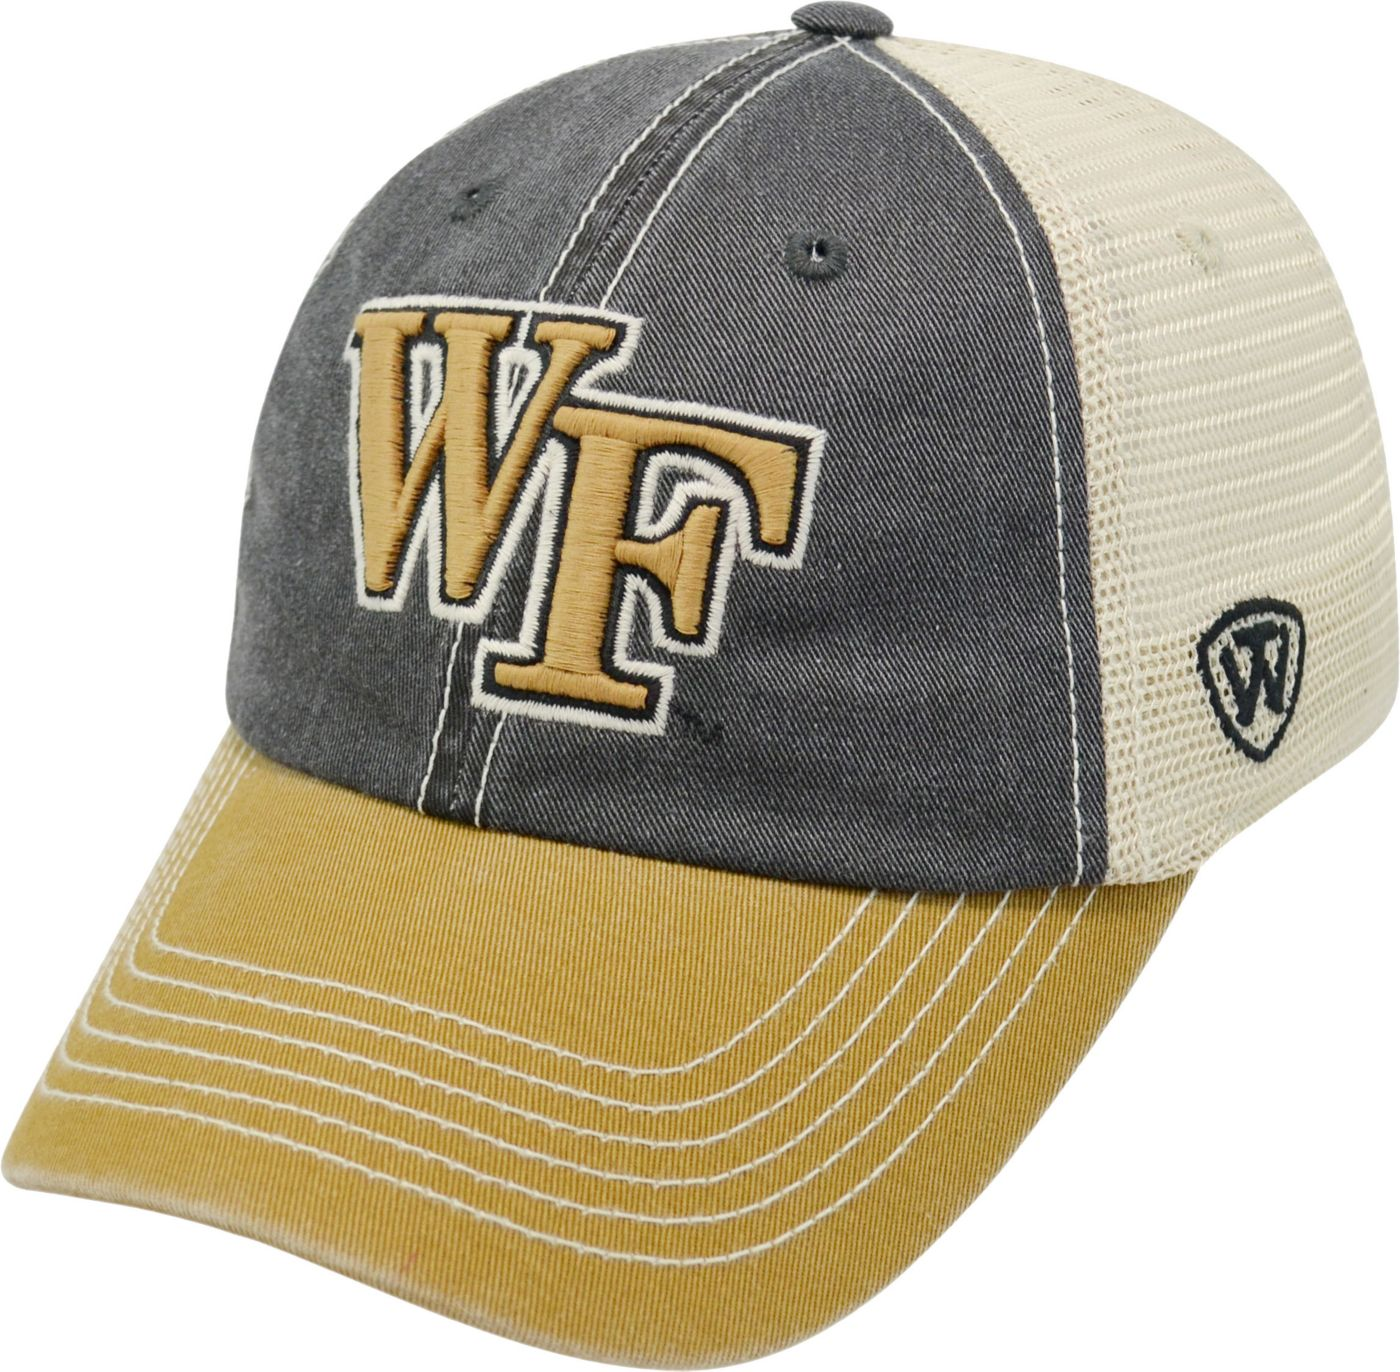 Top of the World Men's Wake Forest Demon Deacons Black/White/Gold Off Road Adjustable Hat